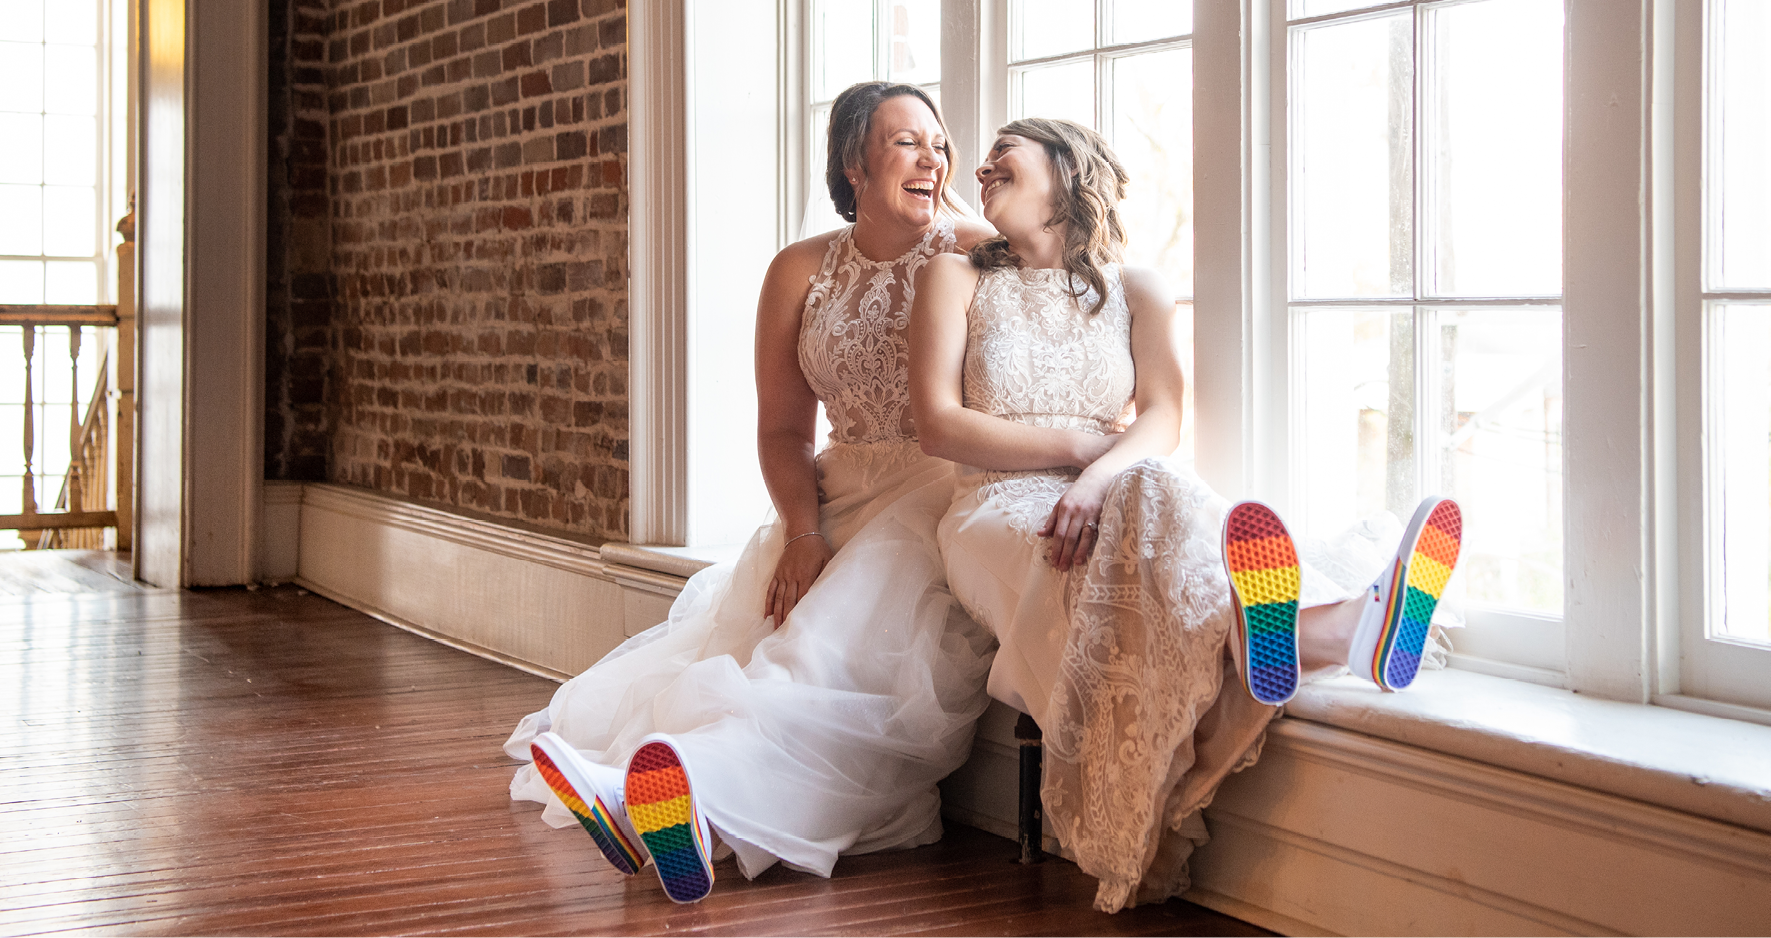 LGBTQ Brides Sitting Together and Wearing Rainbow-Soled Shoes for Pride Wedding Idea